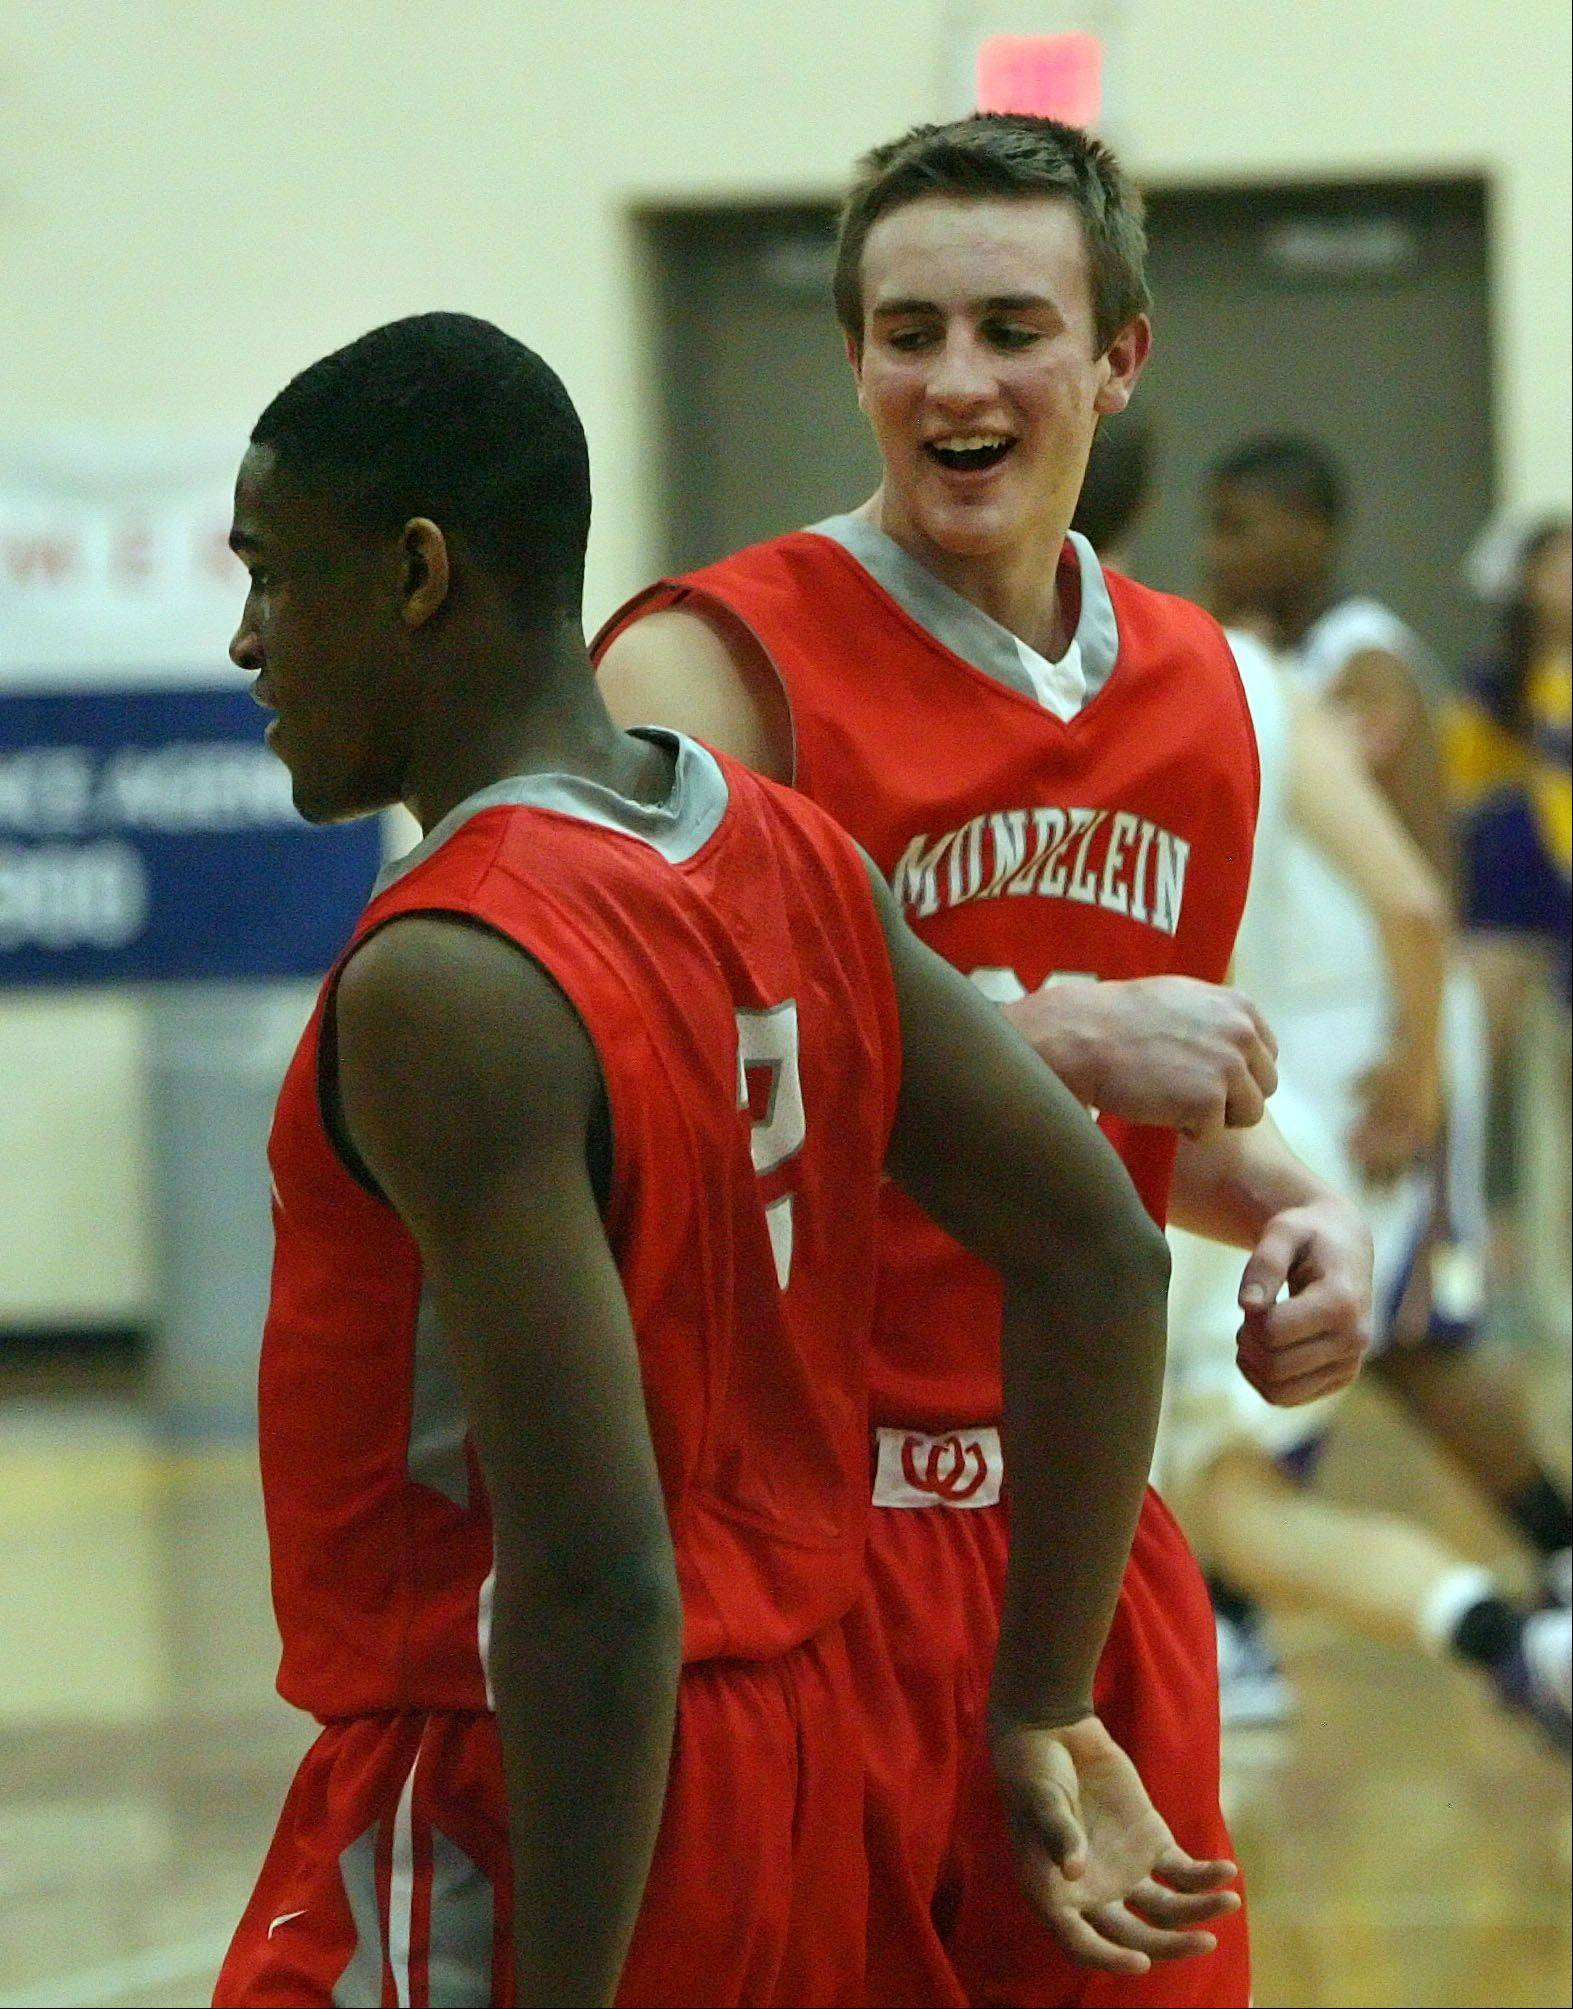 Mundelein's Sean O'Brien, right, celebrates with Chino Ebube after an alley-oop dunk Wednesday at Wauconda.